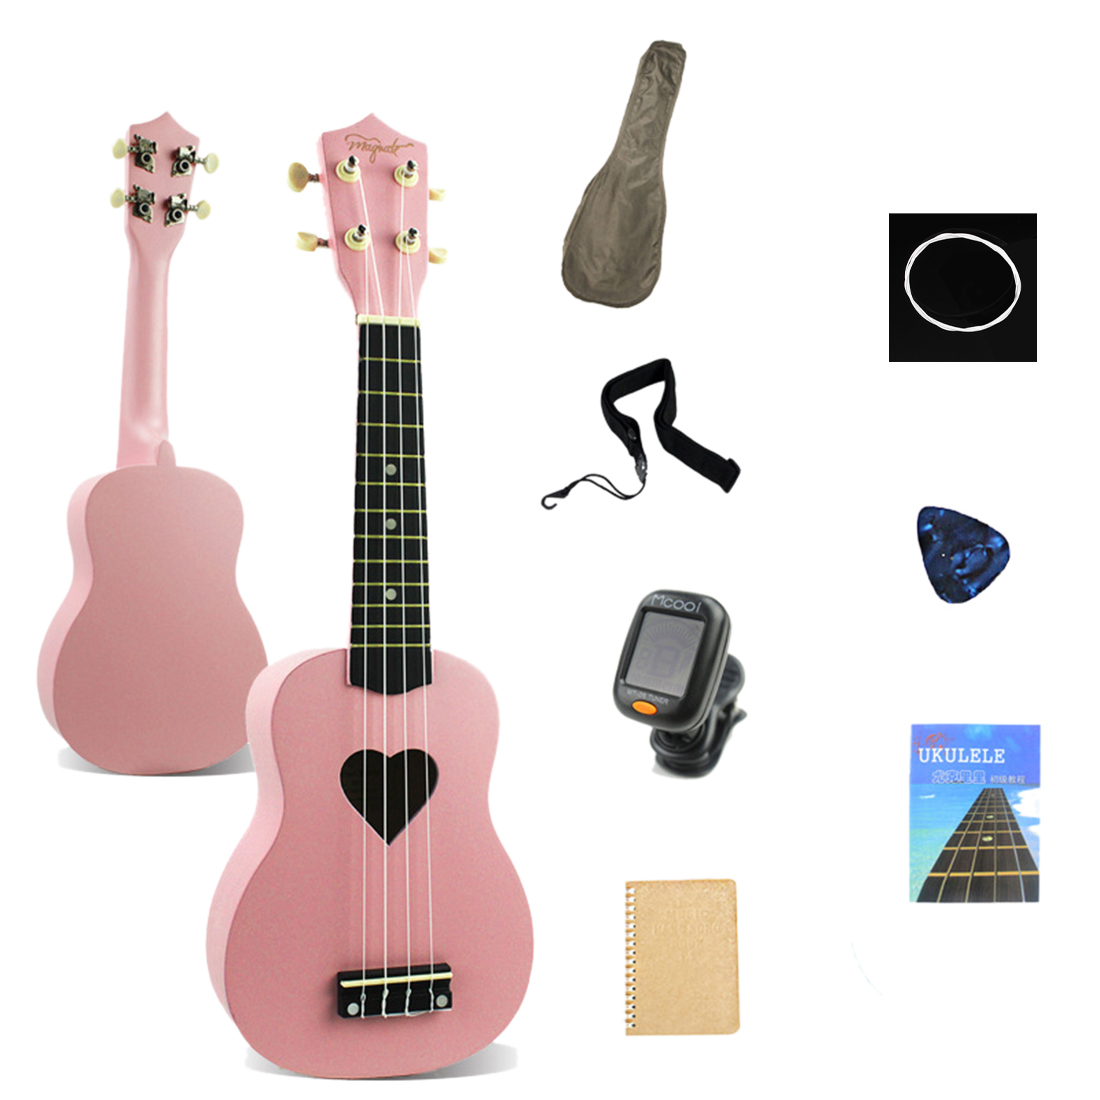 21 Inches Wooden Ukulele 4 Strings <font><b>Guitar</b></font> Musical Instruments Kit/With Storage Case For Children Kids Christmas Gift- Pink Heart image